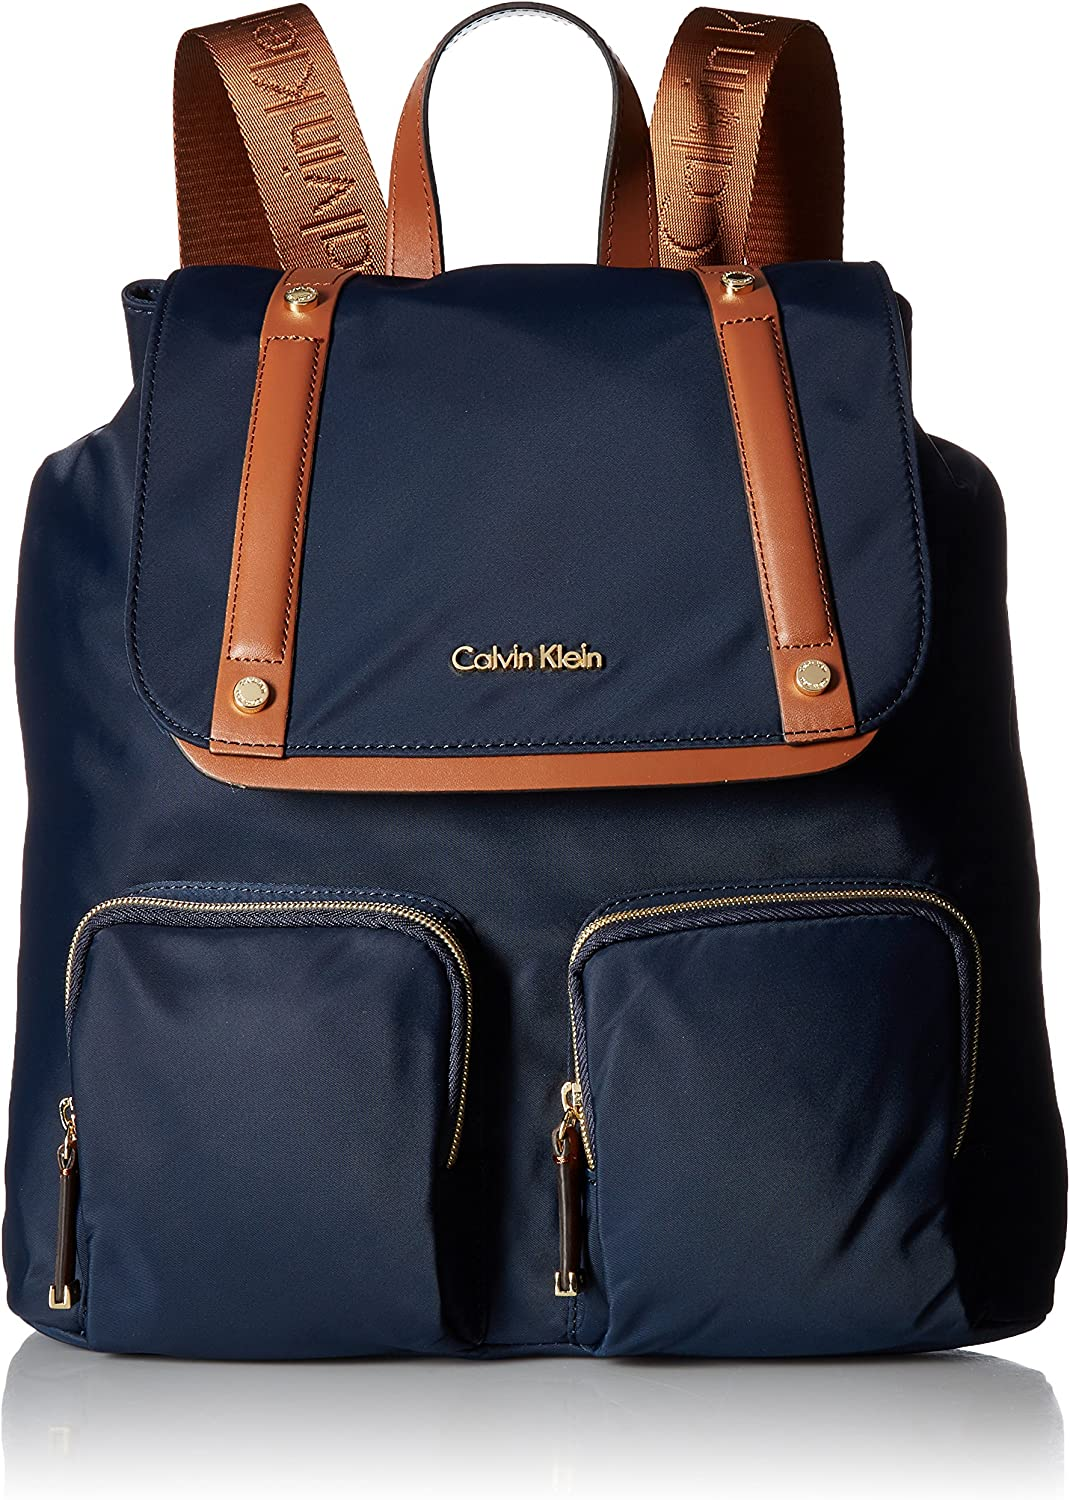 Calvin Klein Teodora Nylon Backpack